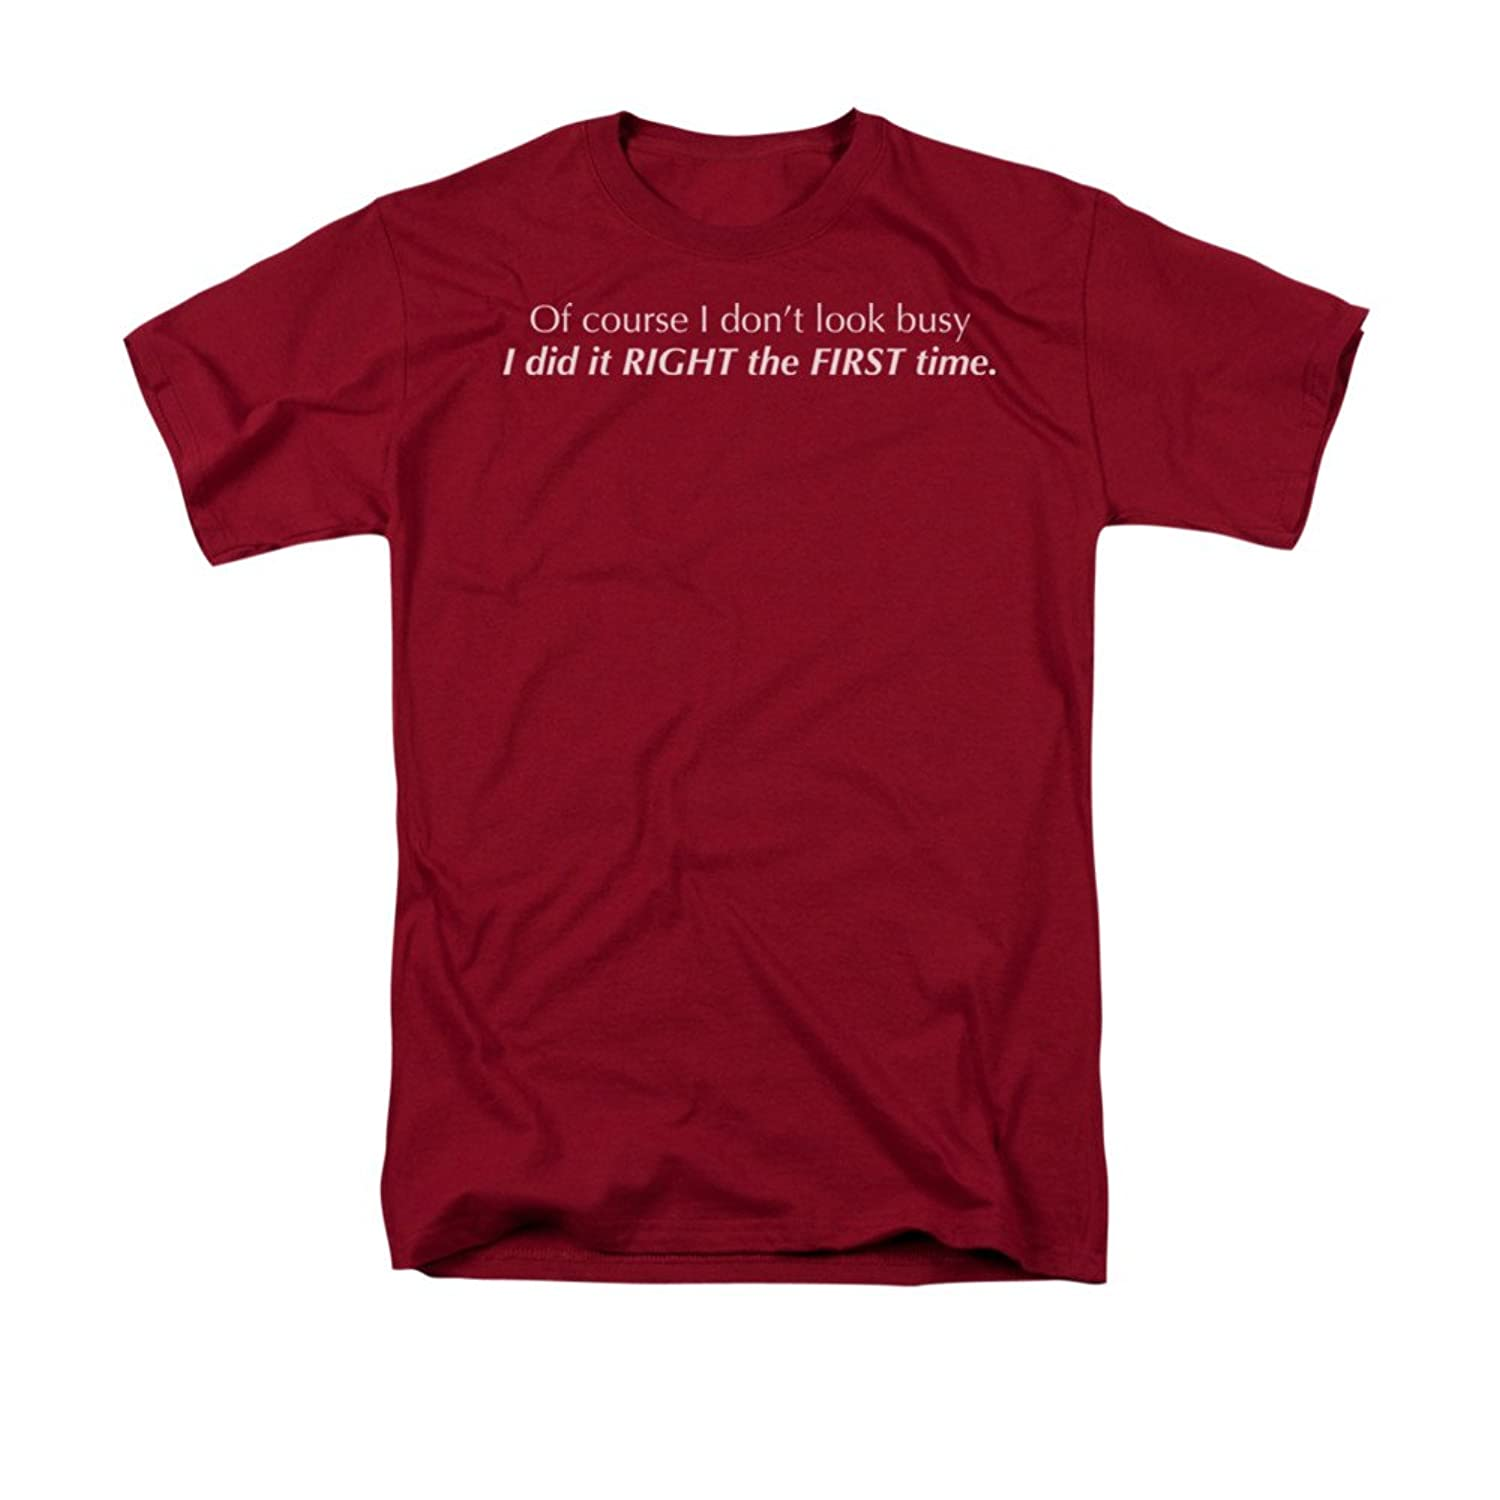 Of Course I Don't Look Busy, I Did It Right The First Time Saying Adult T-Shirt